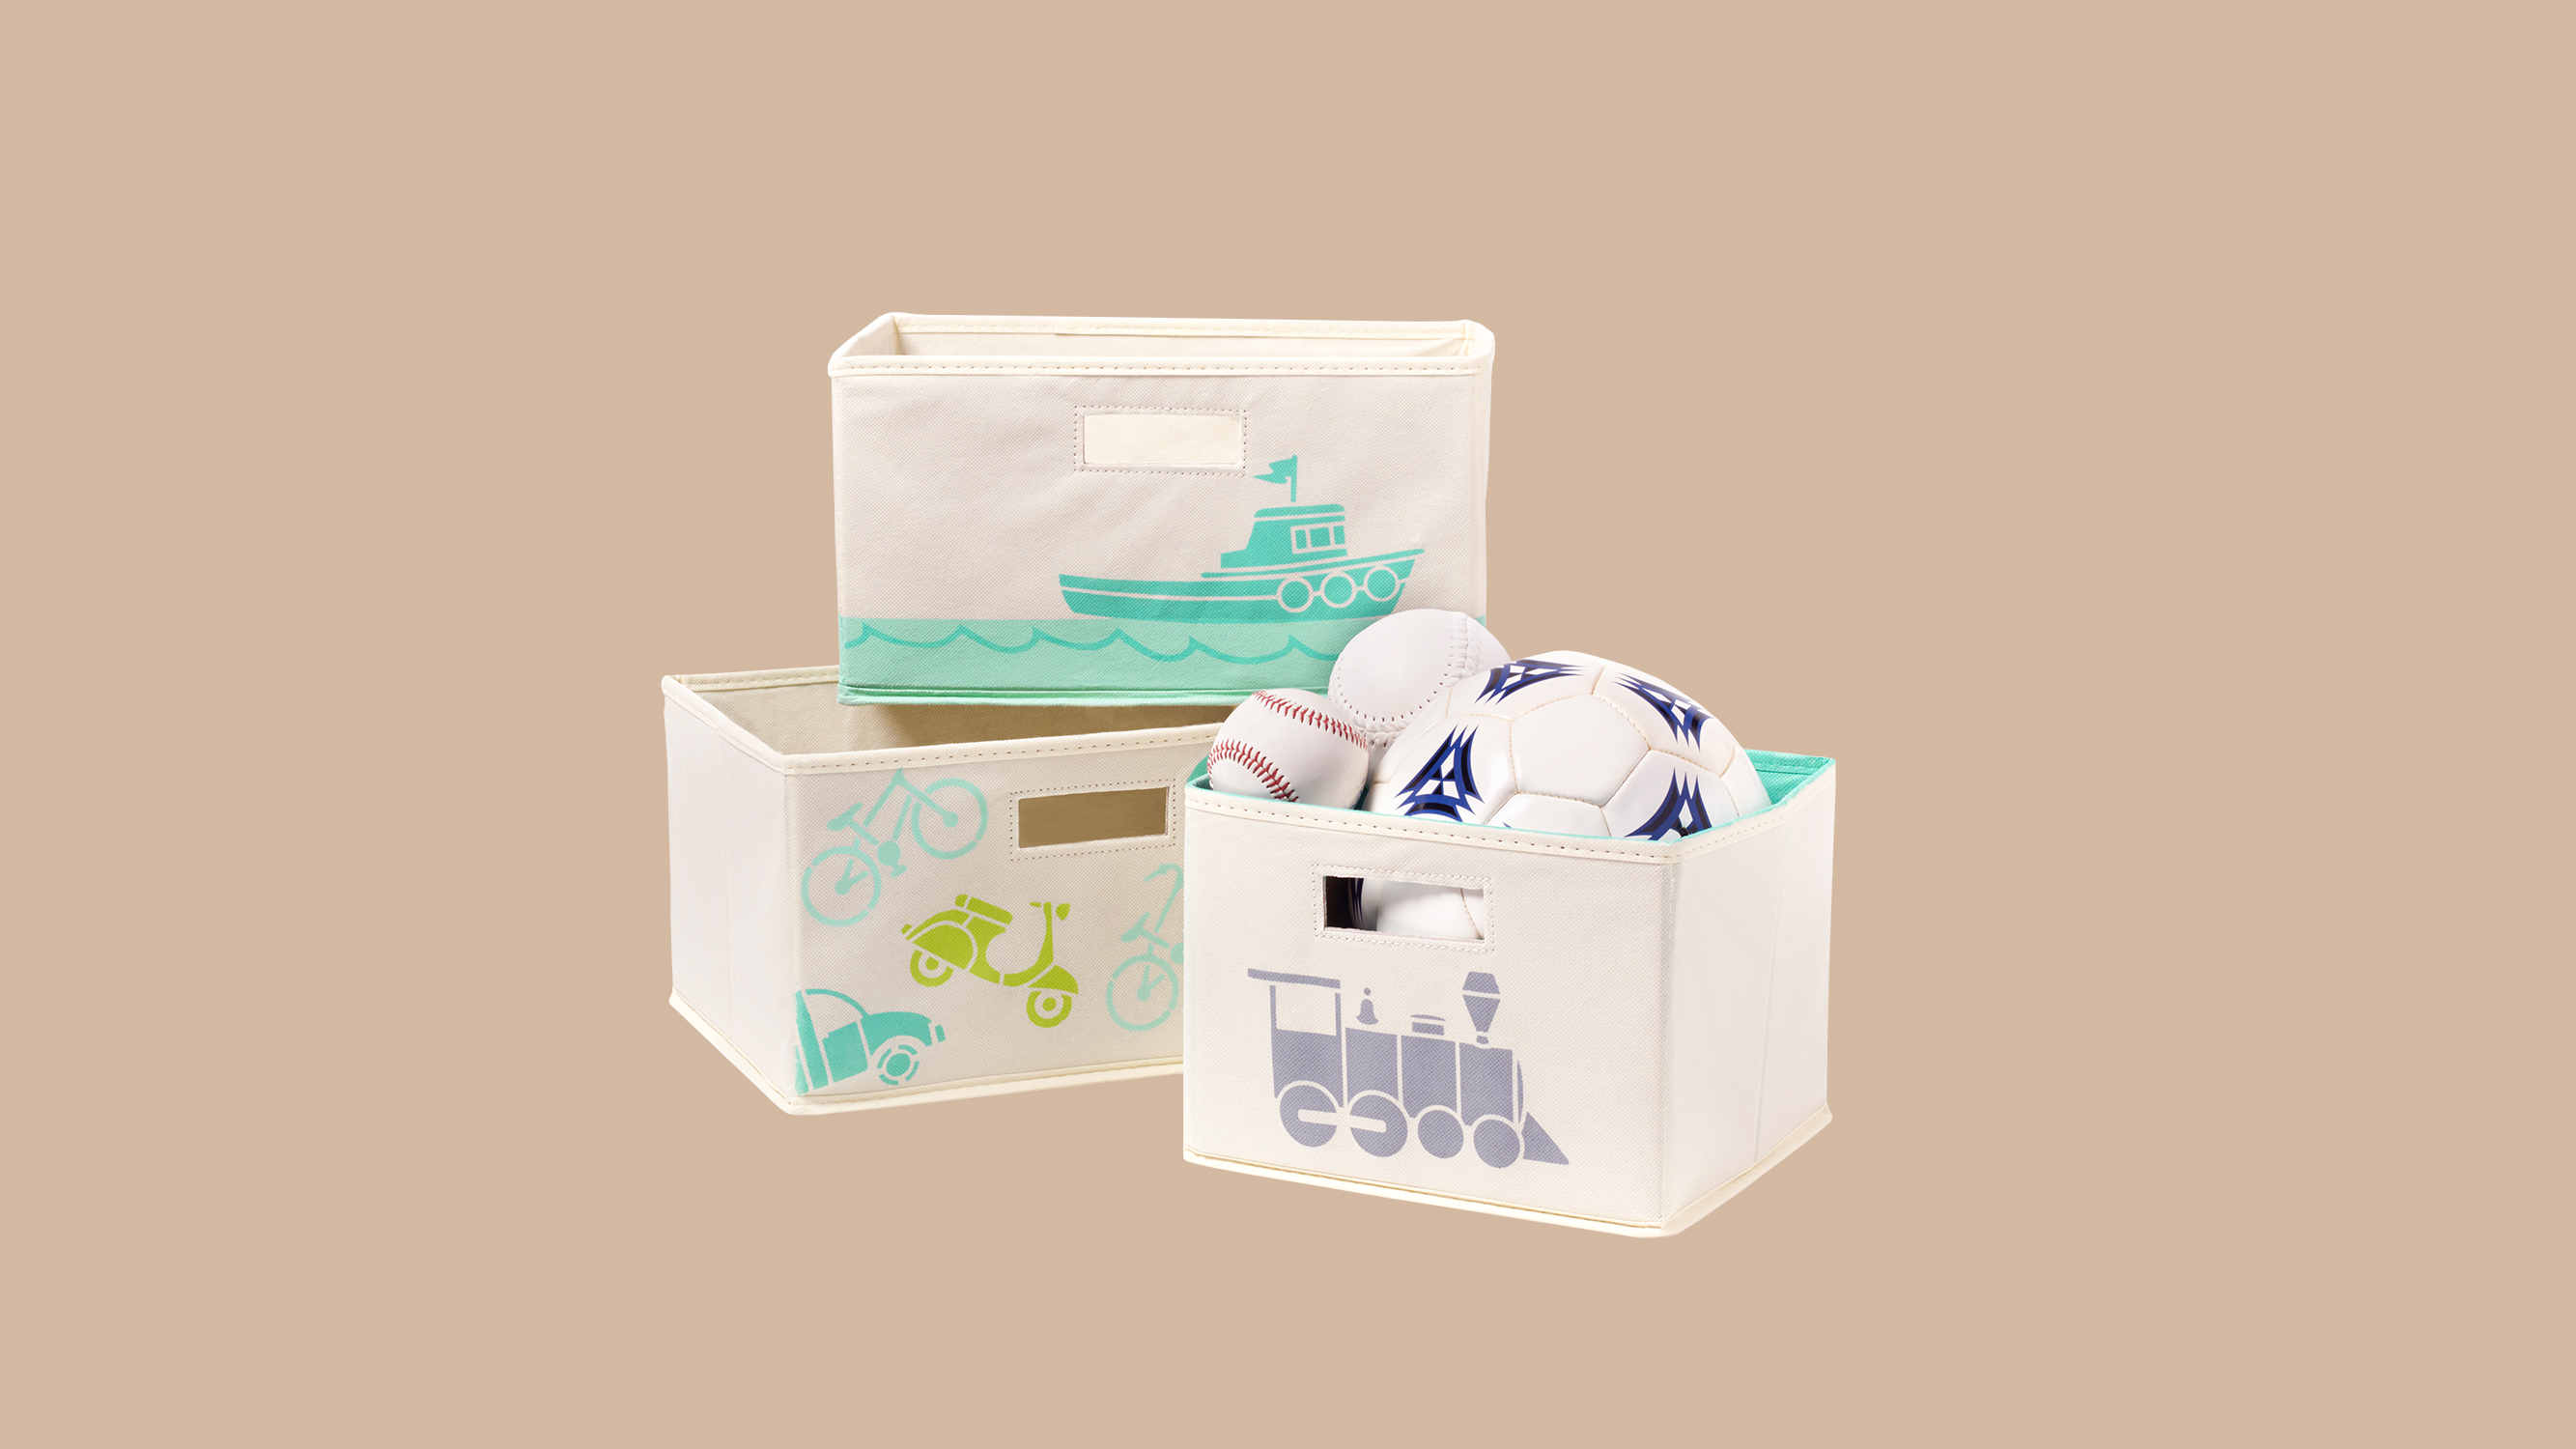 three stenciled bins filled with baseballs soccer ball